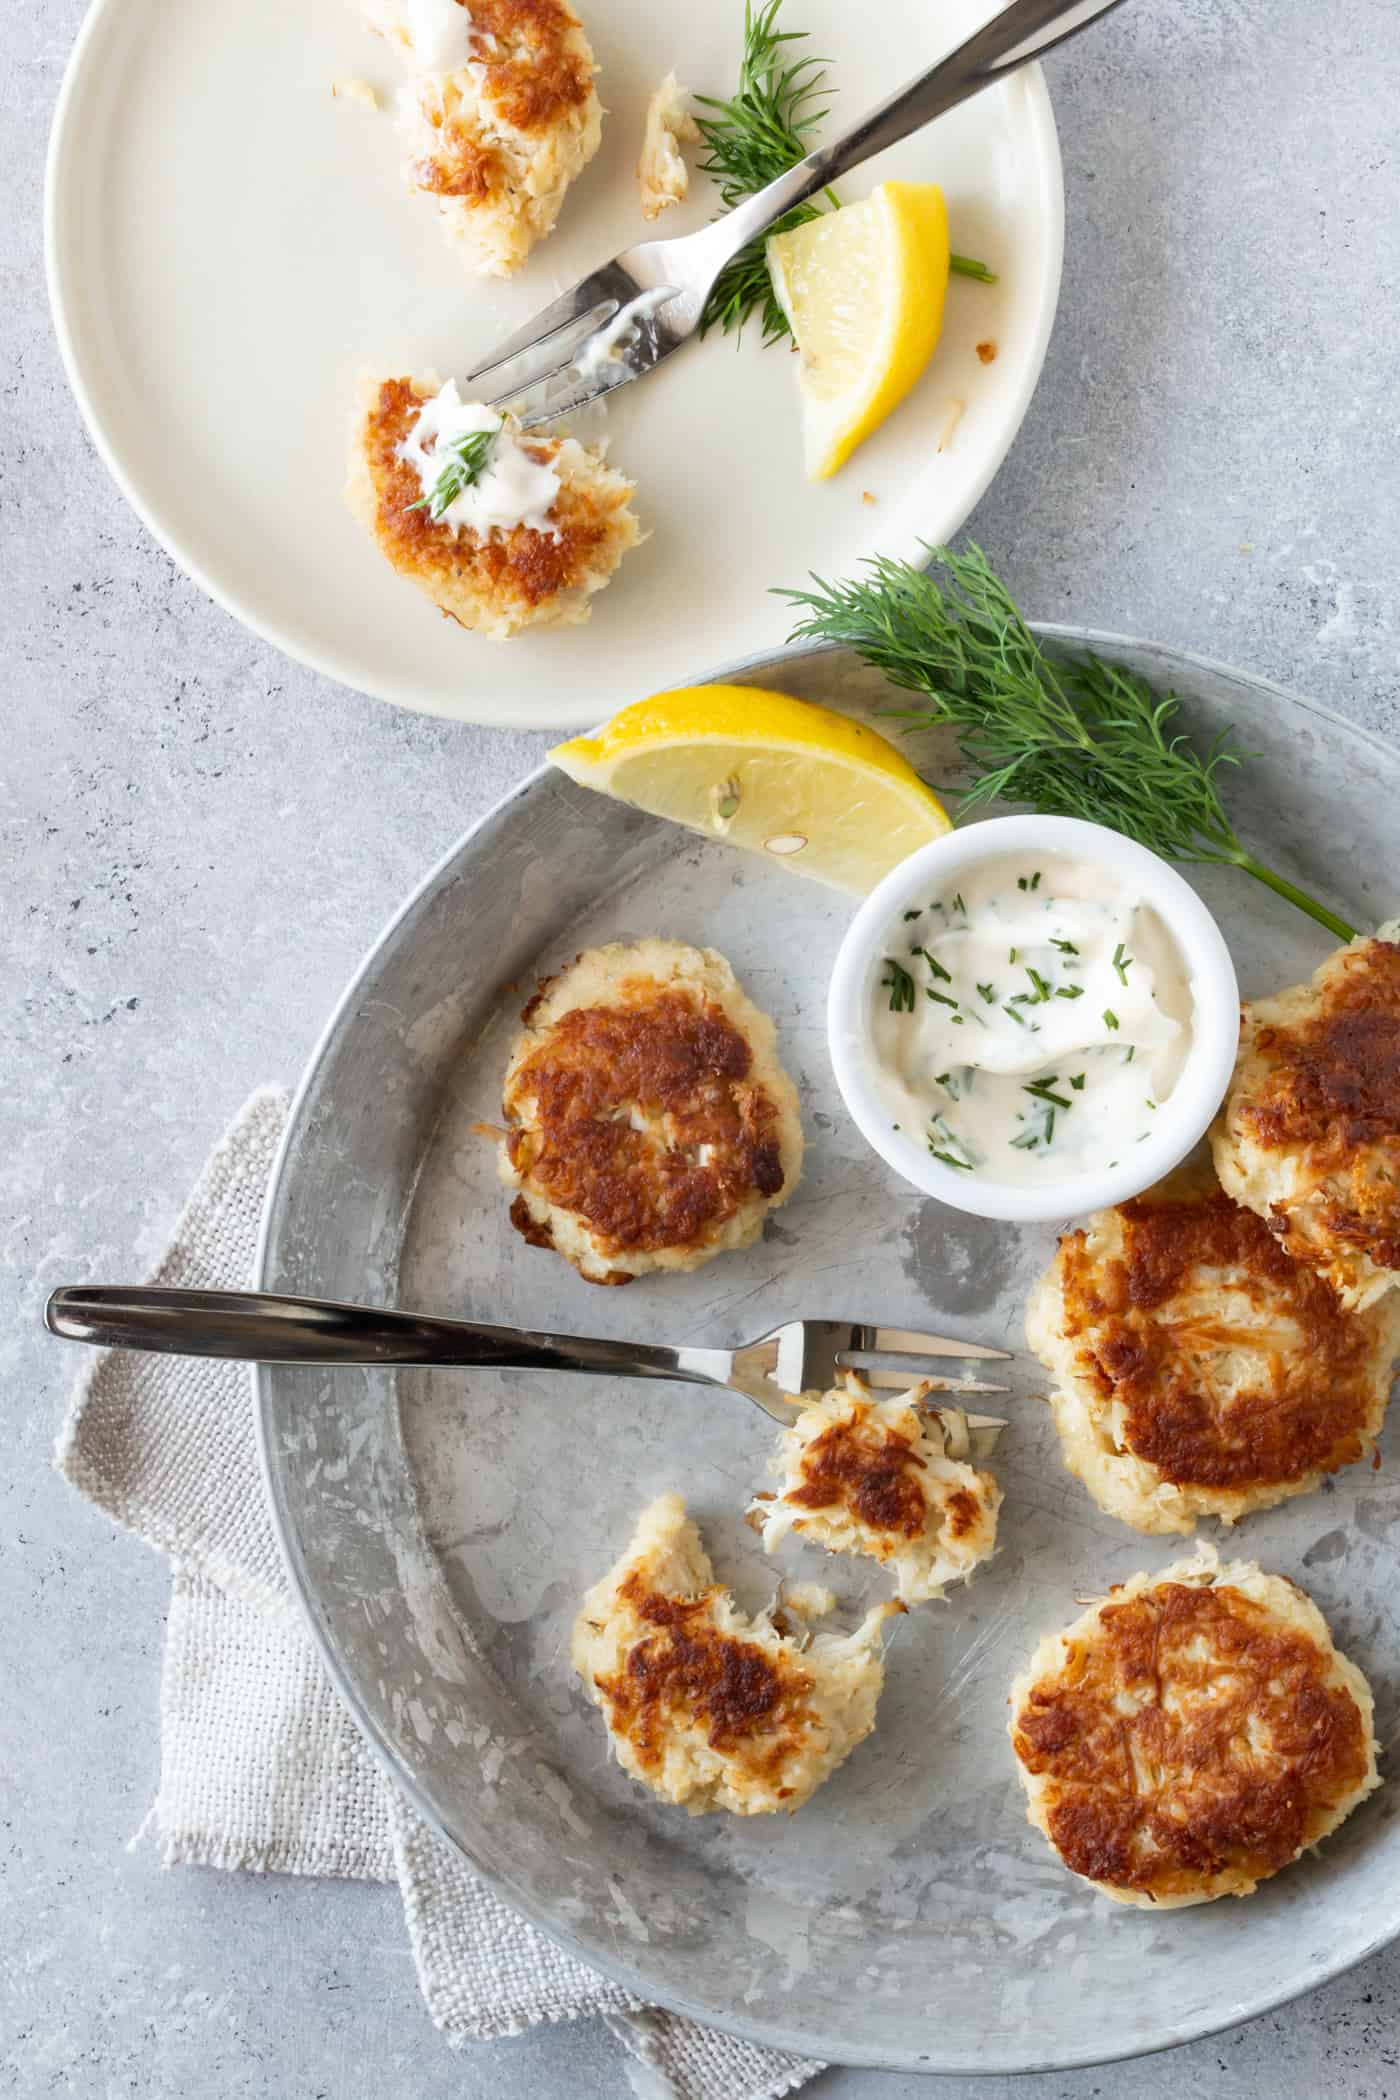 Mini crab cakes on a silver plate with a small fork for eating and dill aioli and fresh lemon for garnishes.